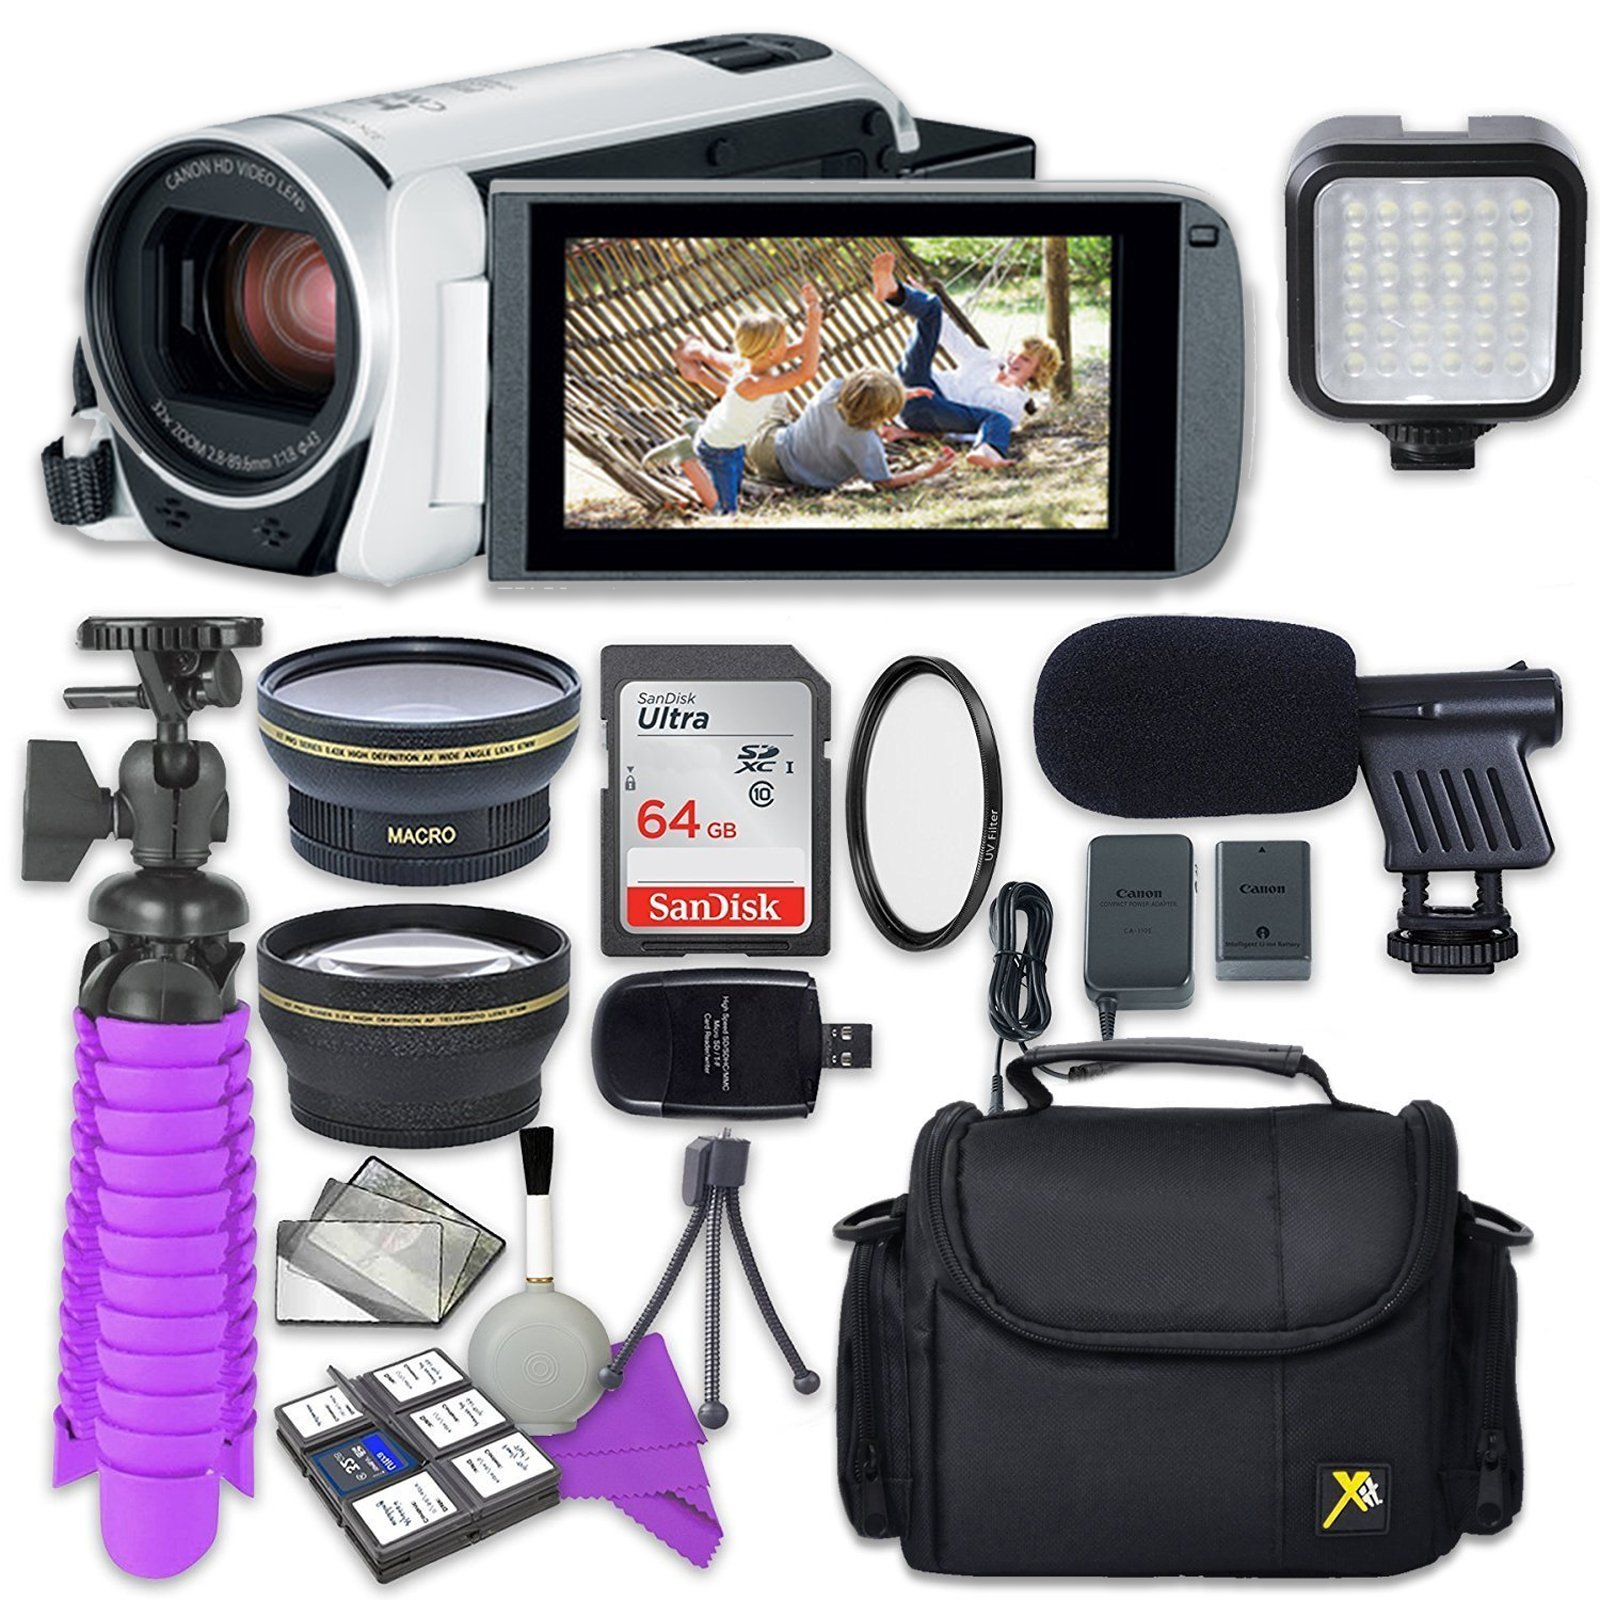 Canon VIXIA HF R800 Camcorder (White) with Sandisk 64 GB SD Memory Card + 2.2X Telephoto Lens + 0.42x Wideangle Lens + Video Accessory Bundle by Canon